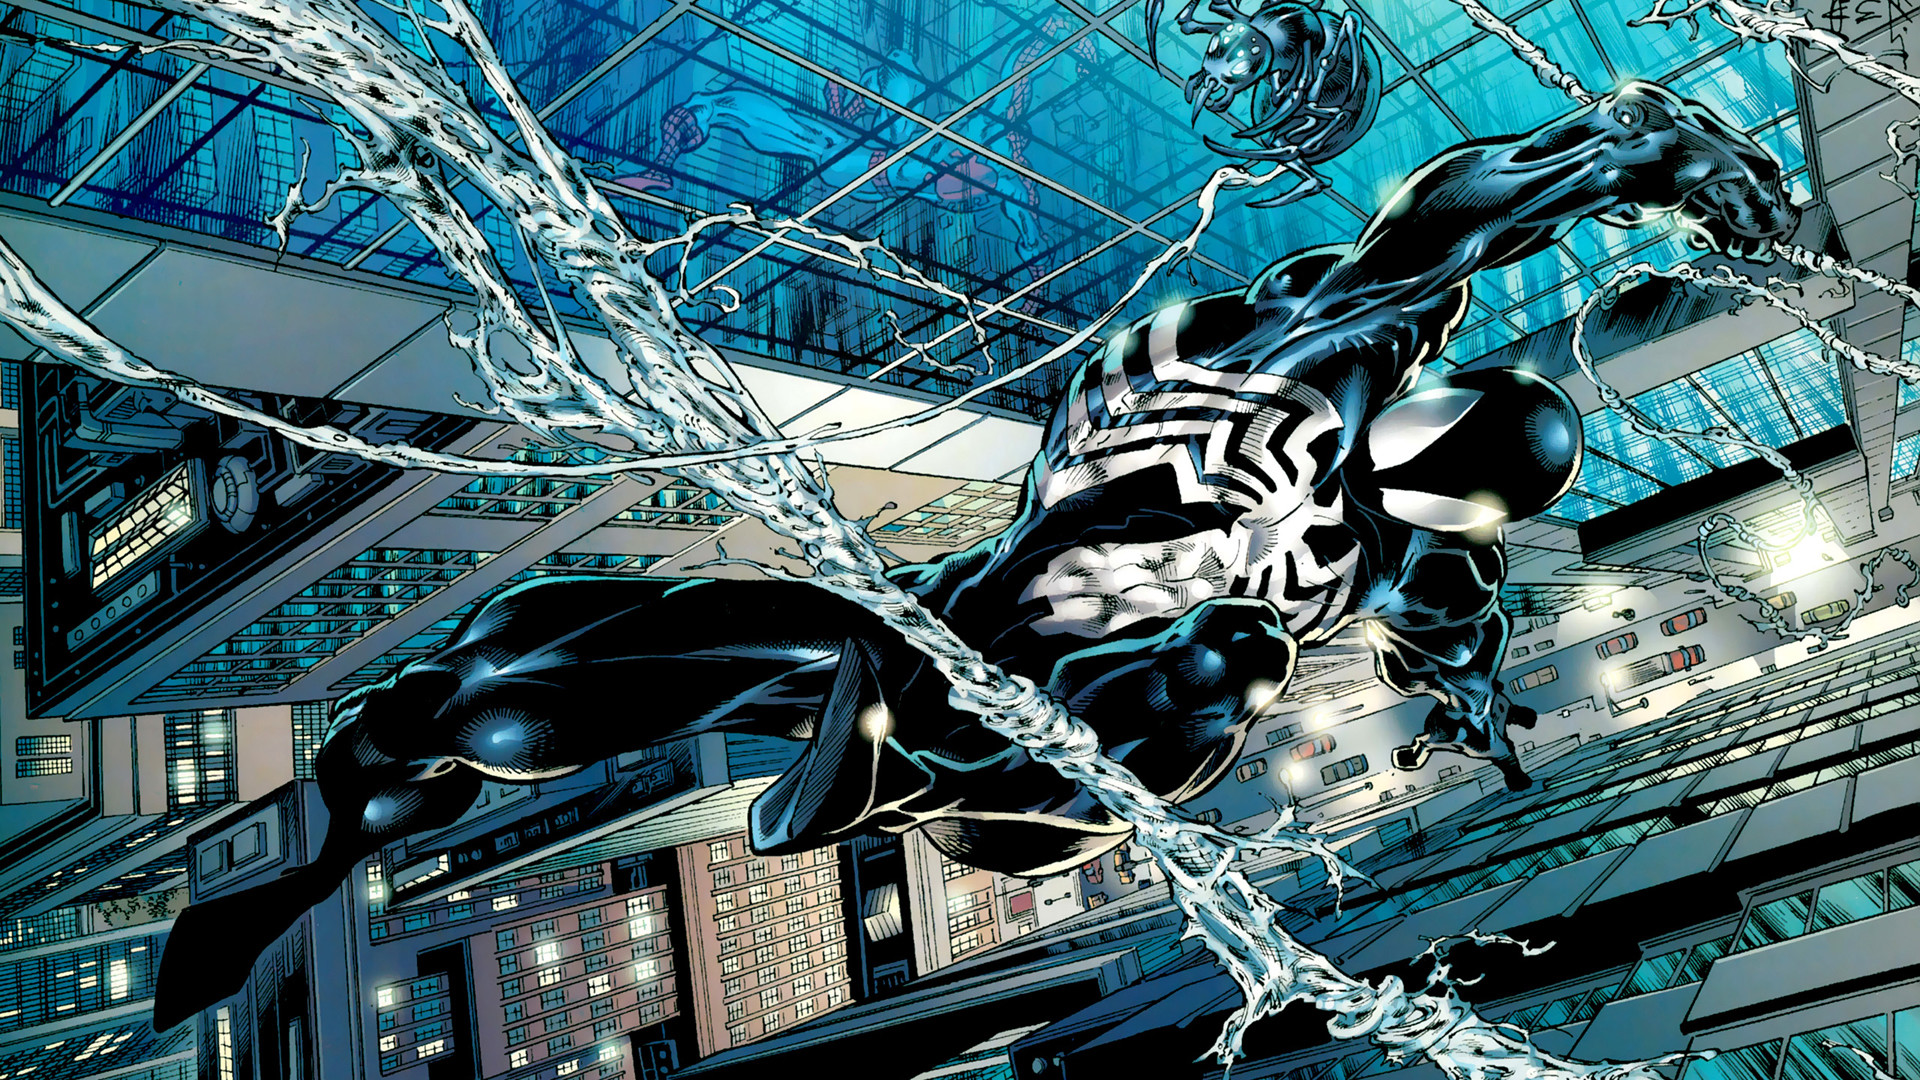 1920x1080 Spider-man Venom HD wallpaper thumb